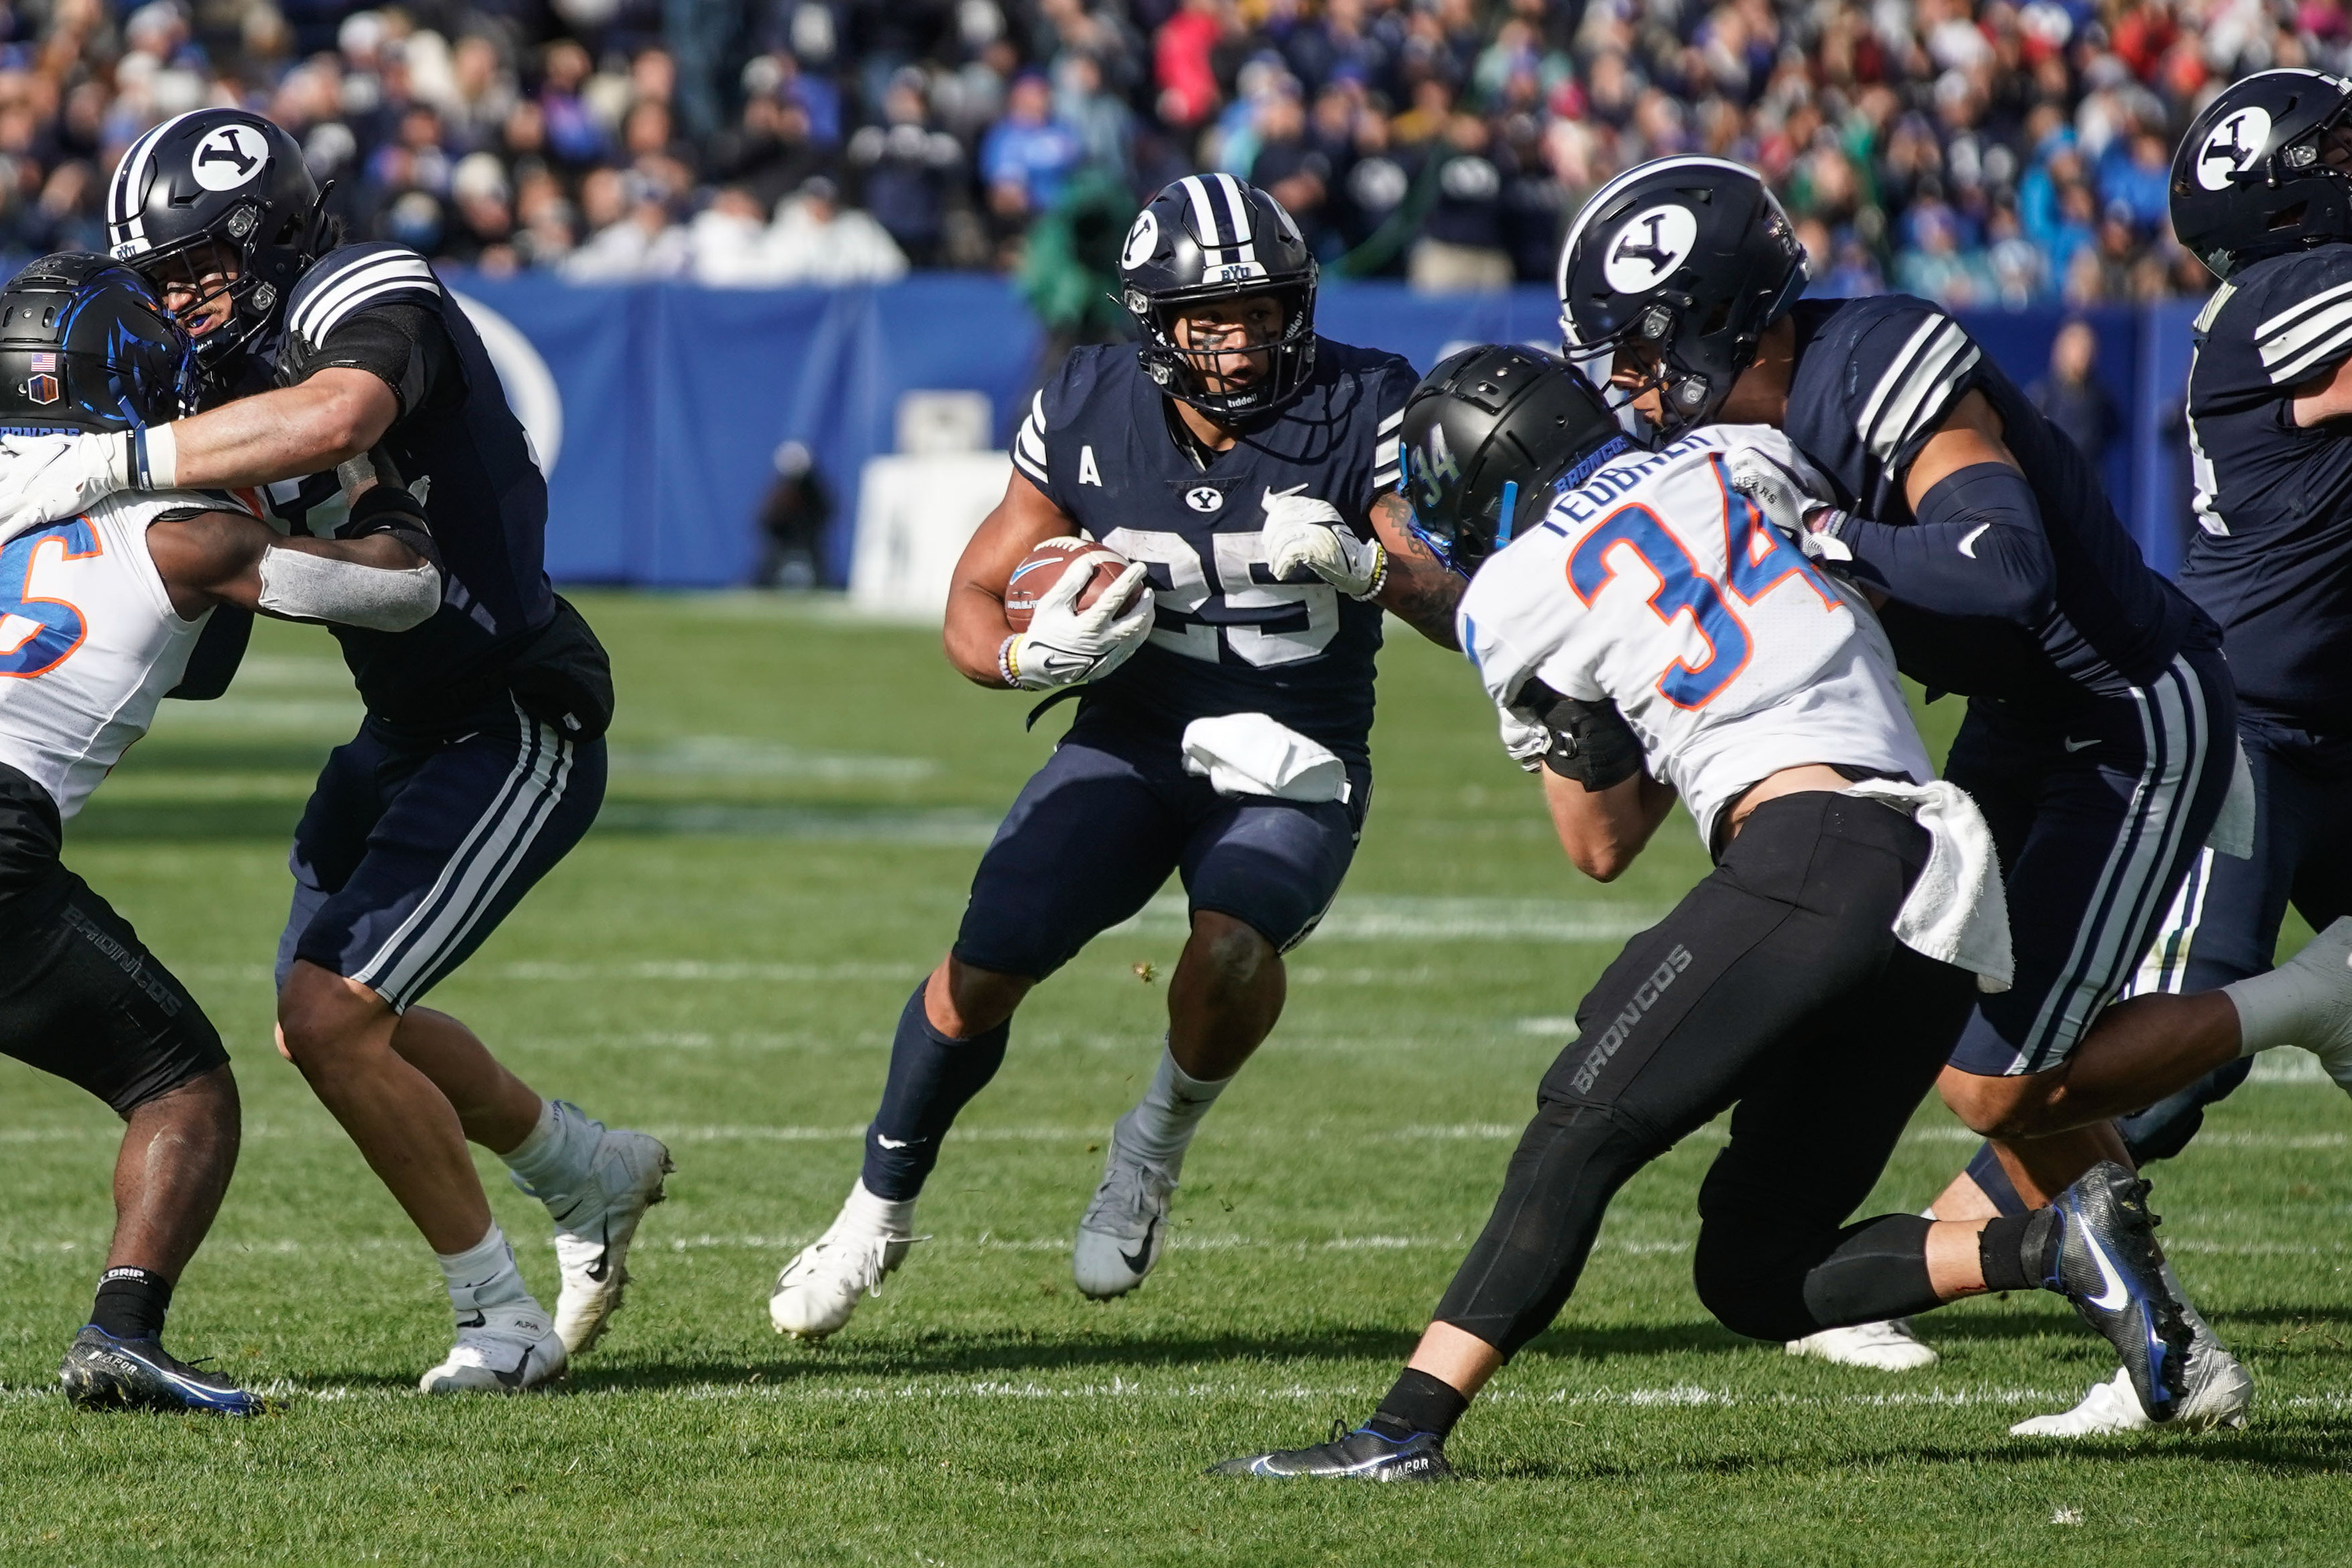 BYU running back Tyler Allgeier (25) runs past Boise State defenders for a touchdown during an NCAA college football game.